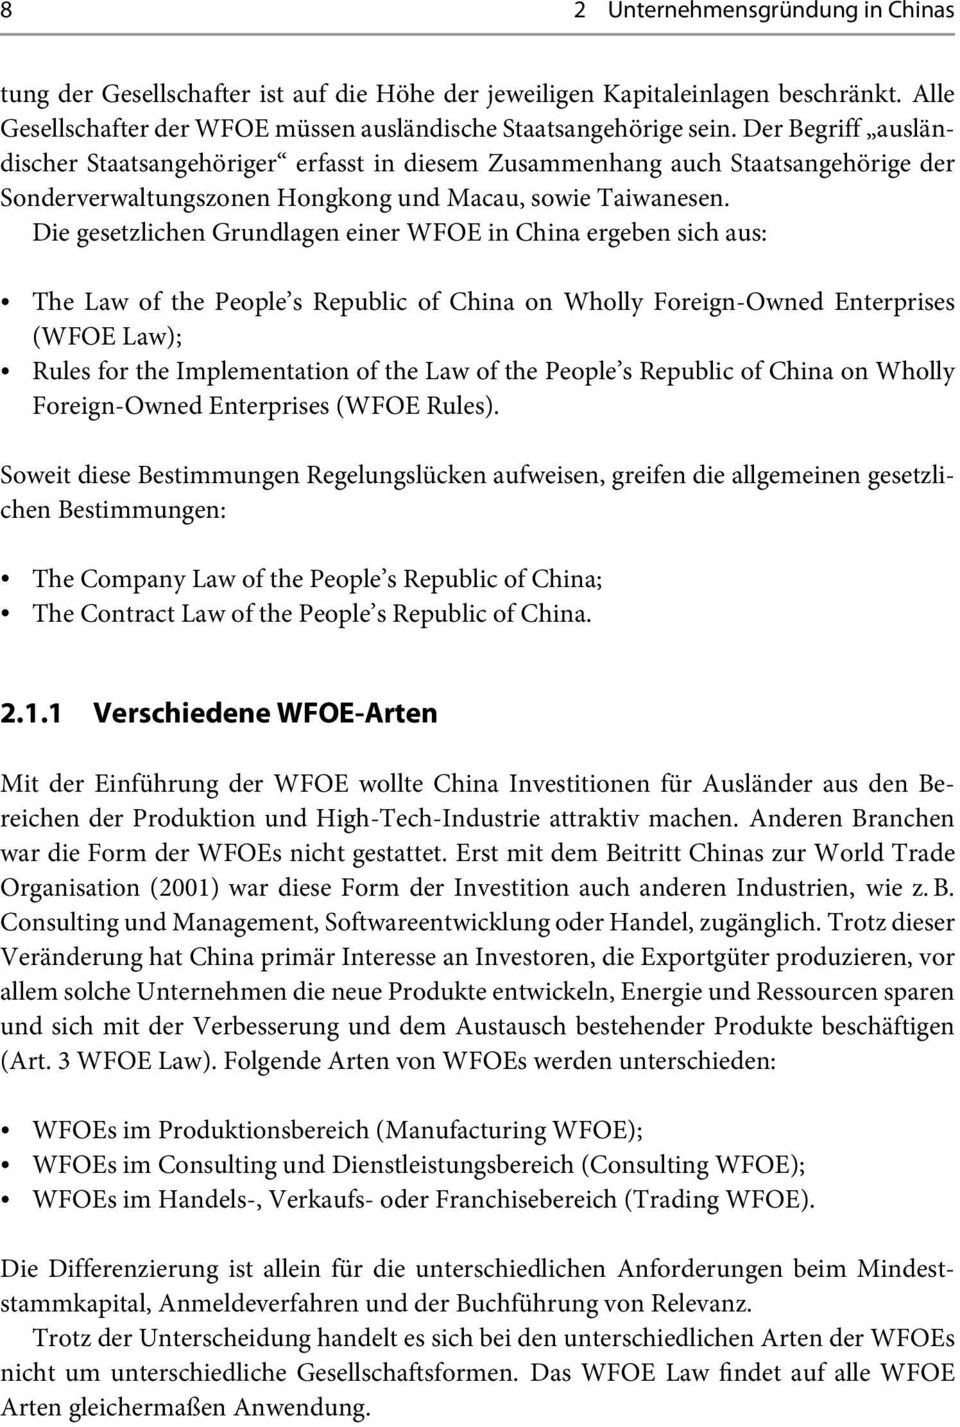 Die gesetzlichen Grundlagen einer WFOE in China ergeben sich aus: The Law of the People s Republic of China on Wholly Foreign-Owned Enterprises (WFOE Law); Rules for the Implementation of the Law of